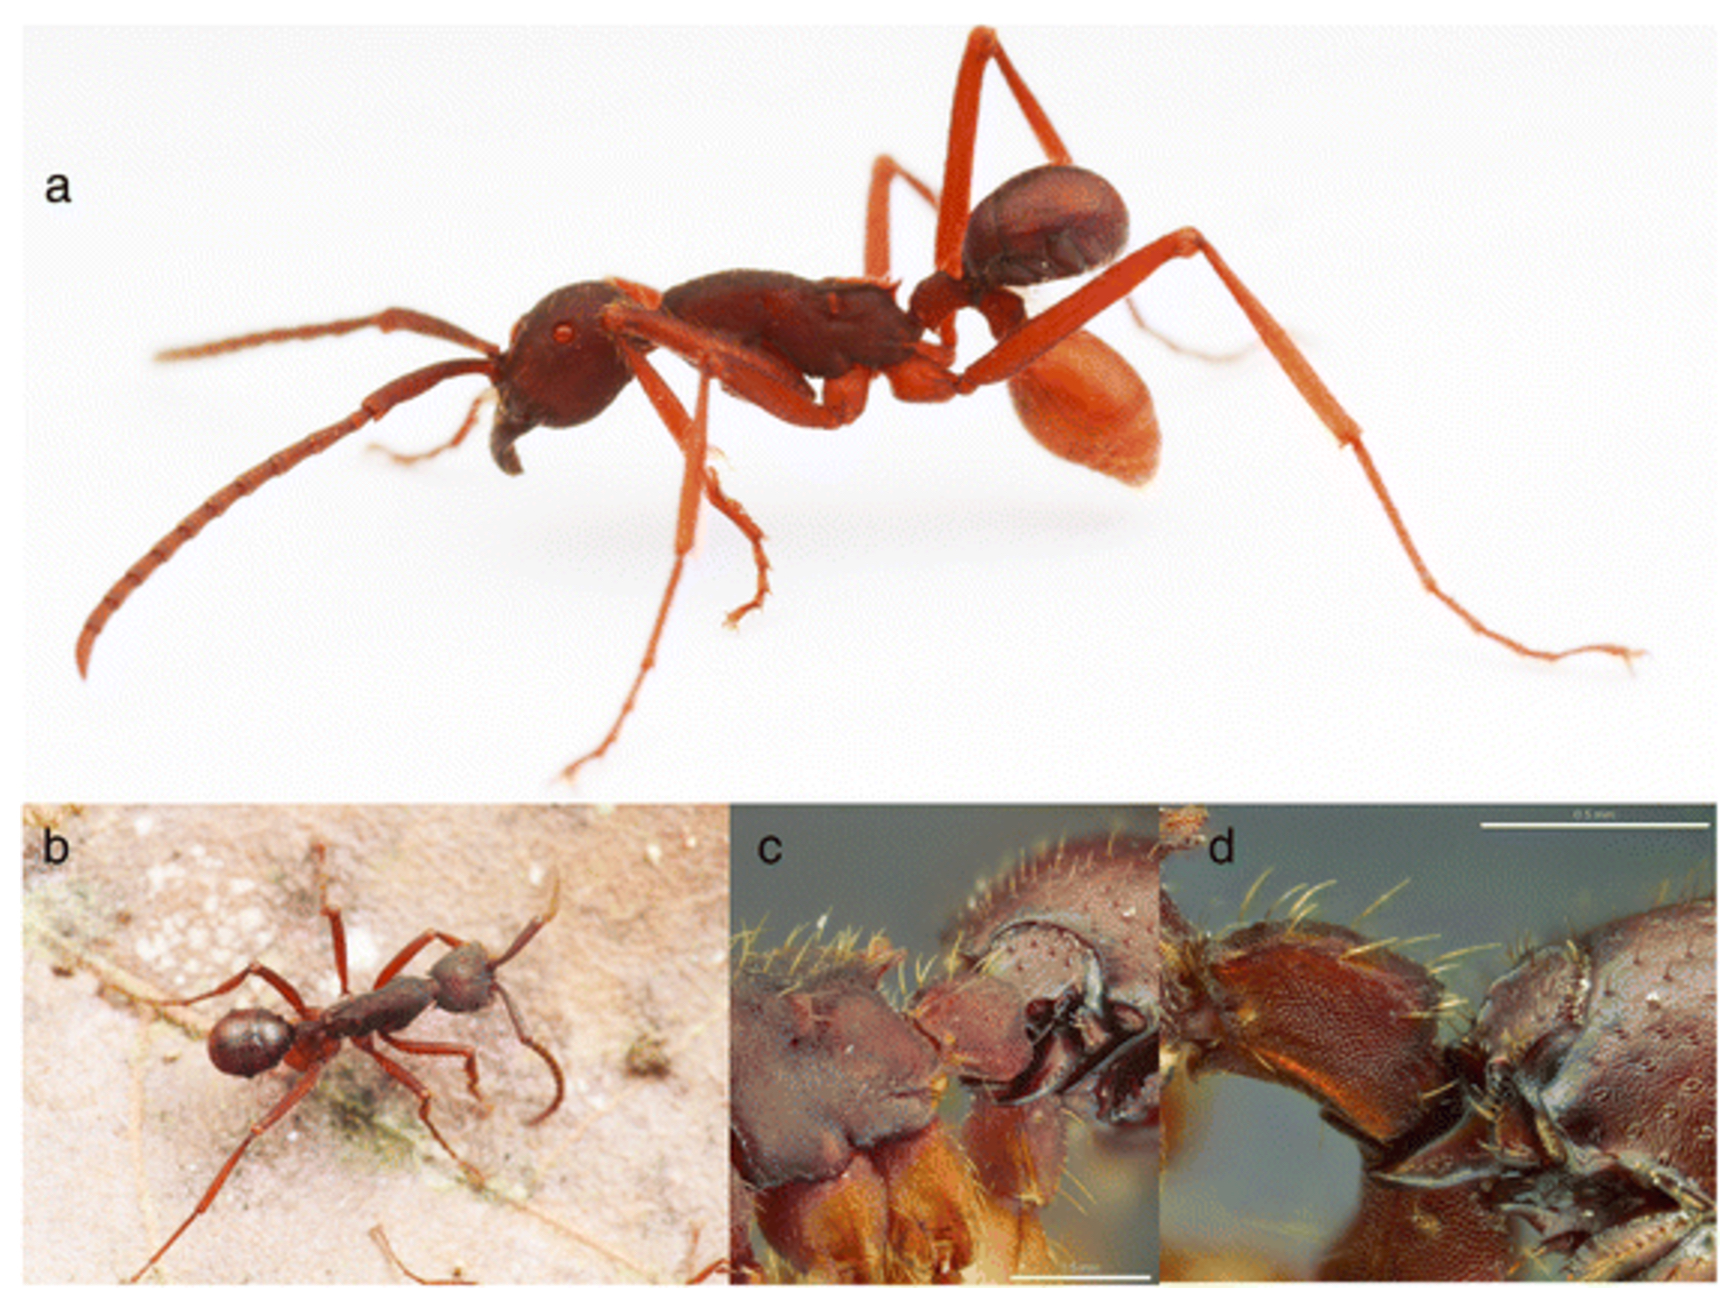 Above, you can see <em>N. kronaueri</em> attached to the ant's back and using its mandibles to grip between the second and third segments of the ant's body. Below, a close-up of the beetle's mandibles clamped on.